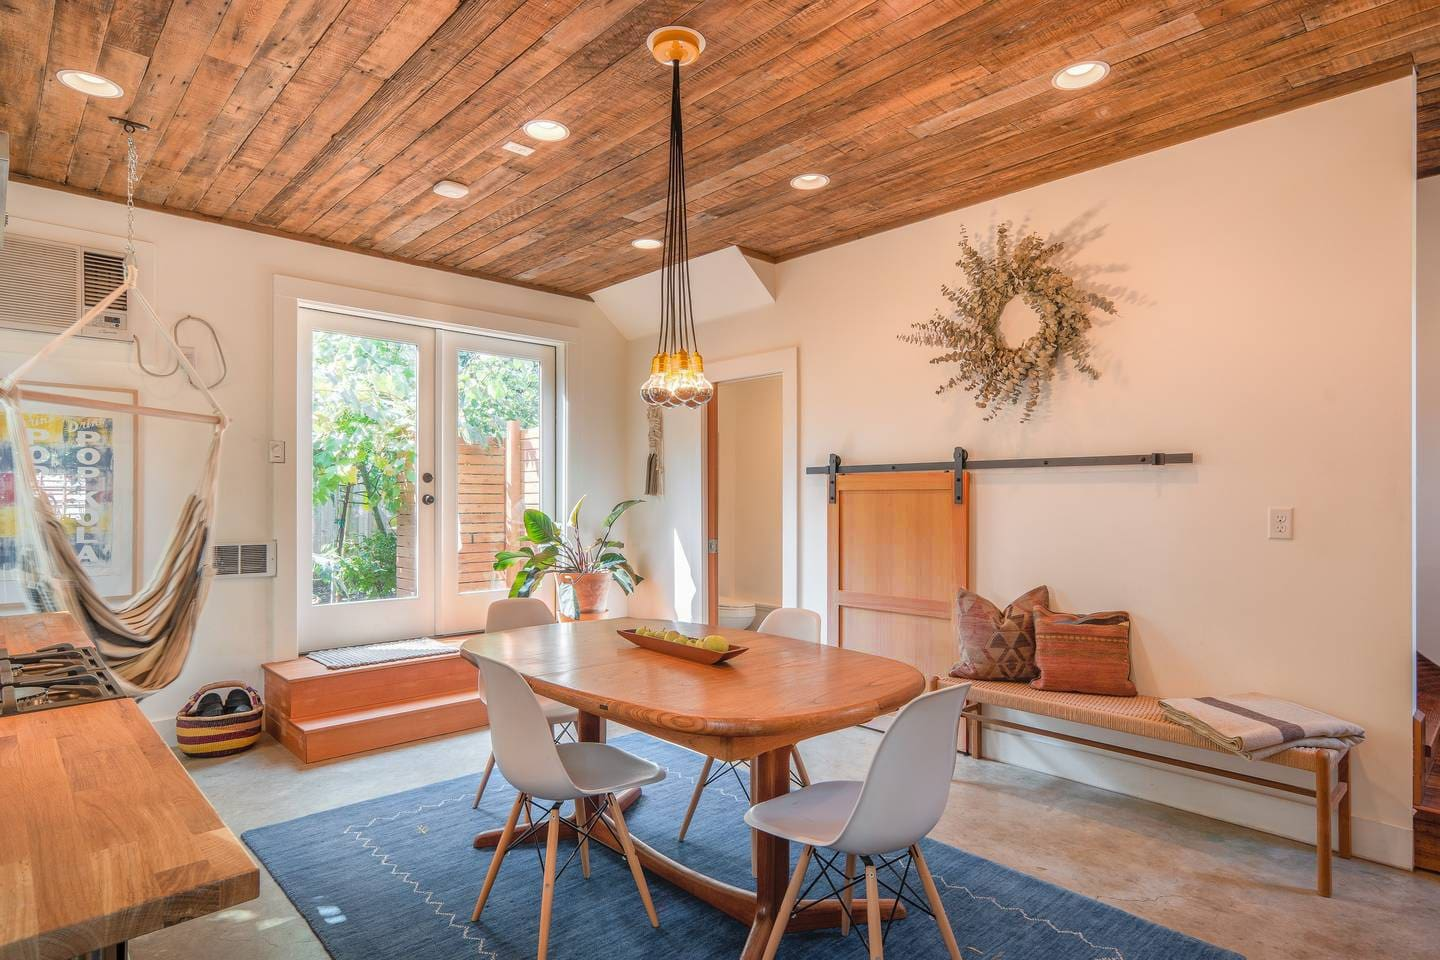 Sorta Summer House is bright and airy with a mix of hardwoods.